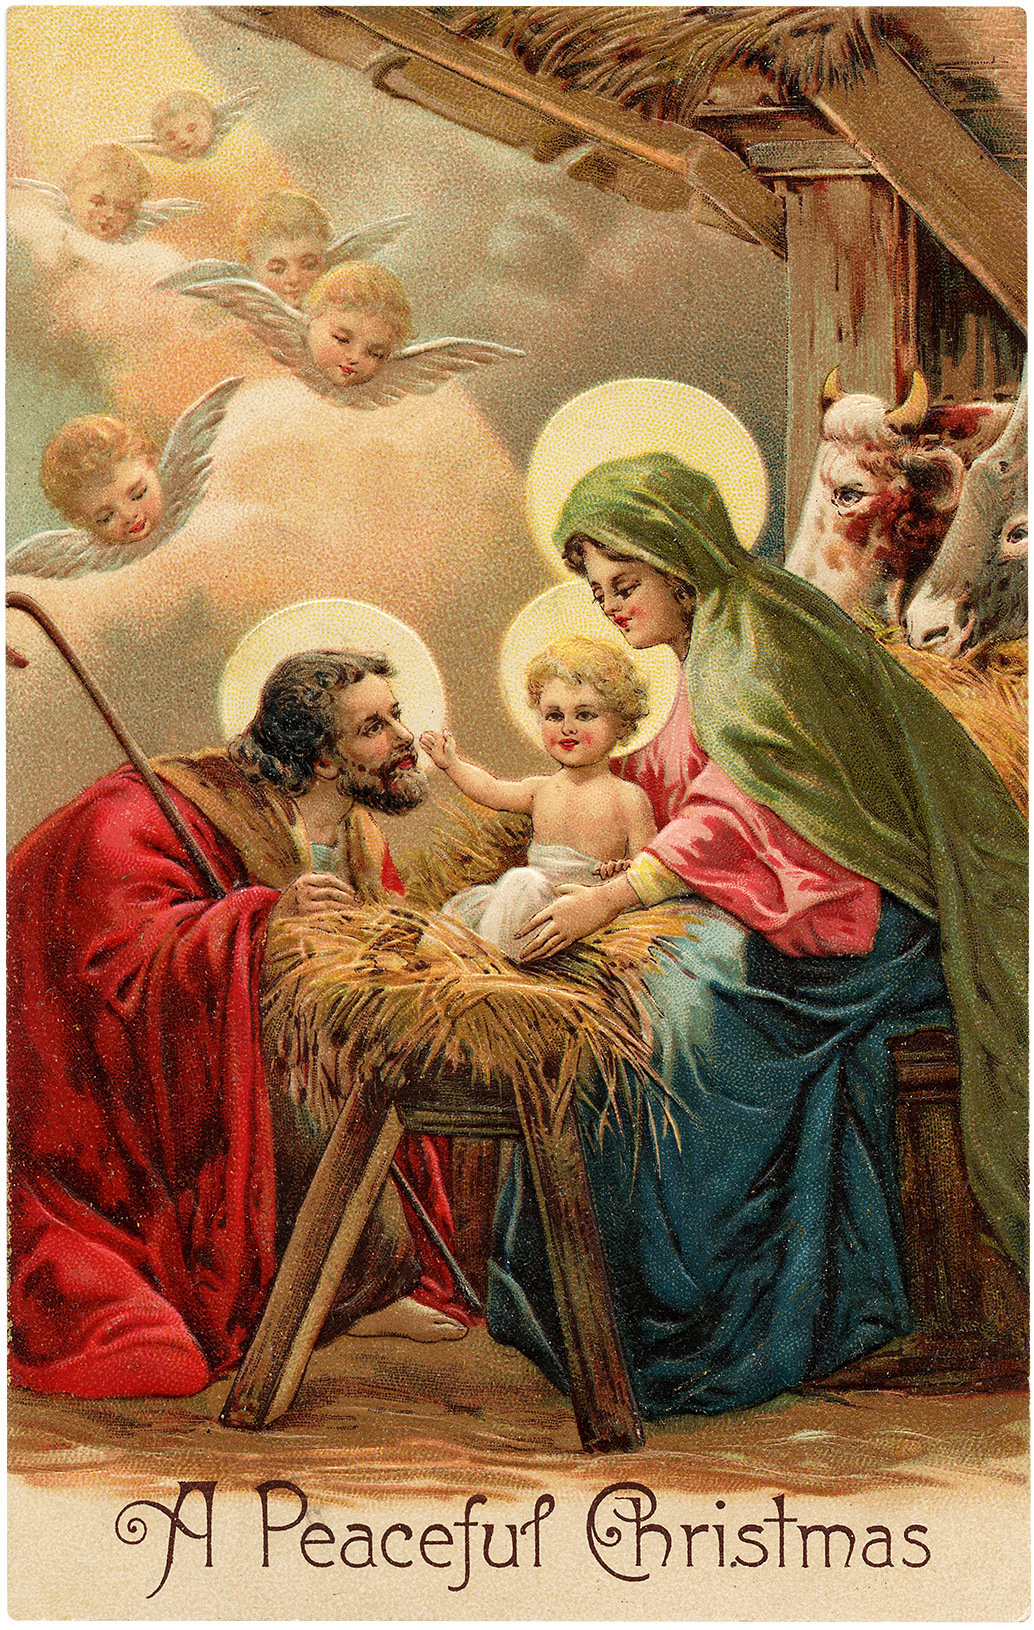 Vintage Peaceful Christmas Nativity Image The Graphics